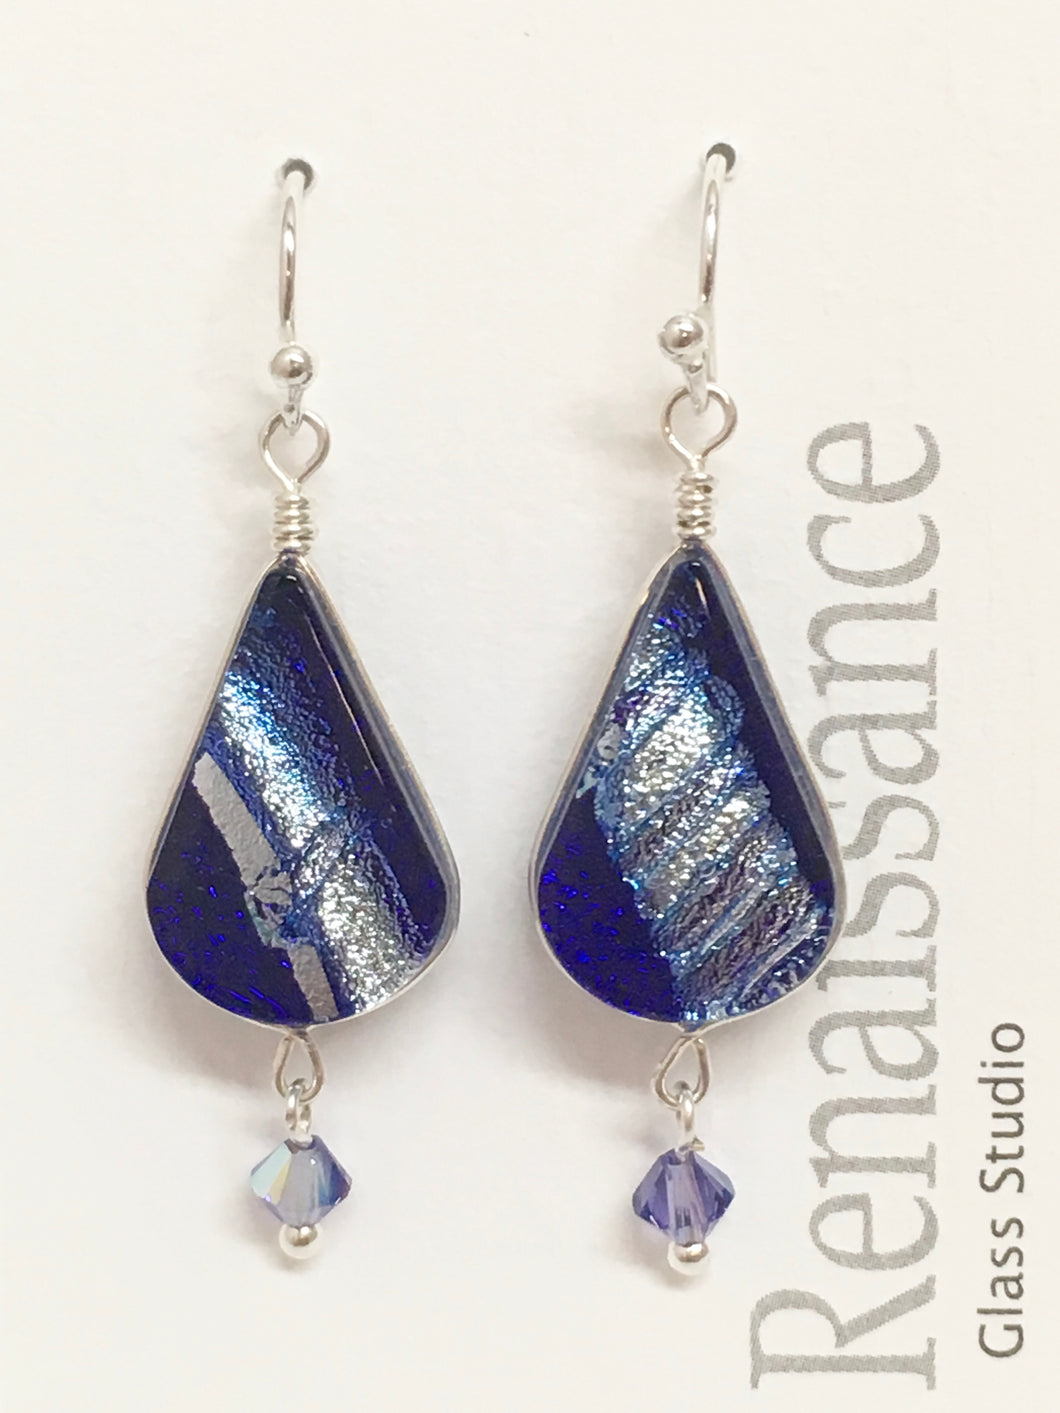 Dichroic Glass Earrings - Blue & Silver with Swarovski Crystal